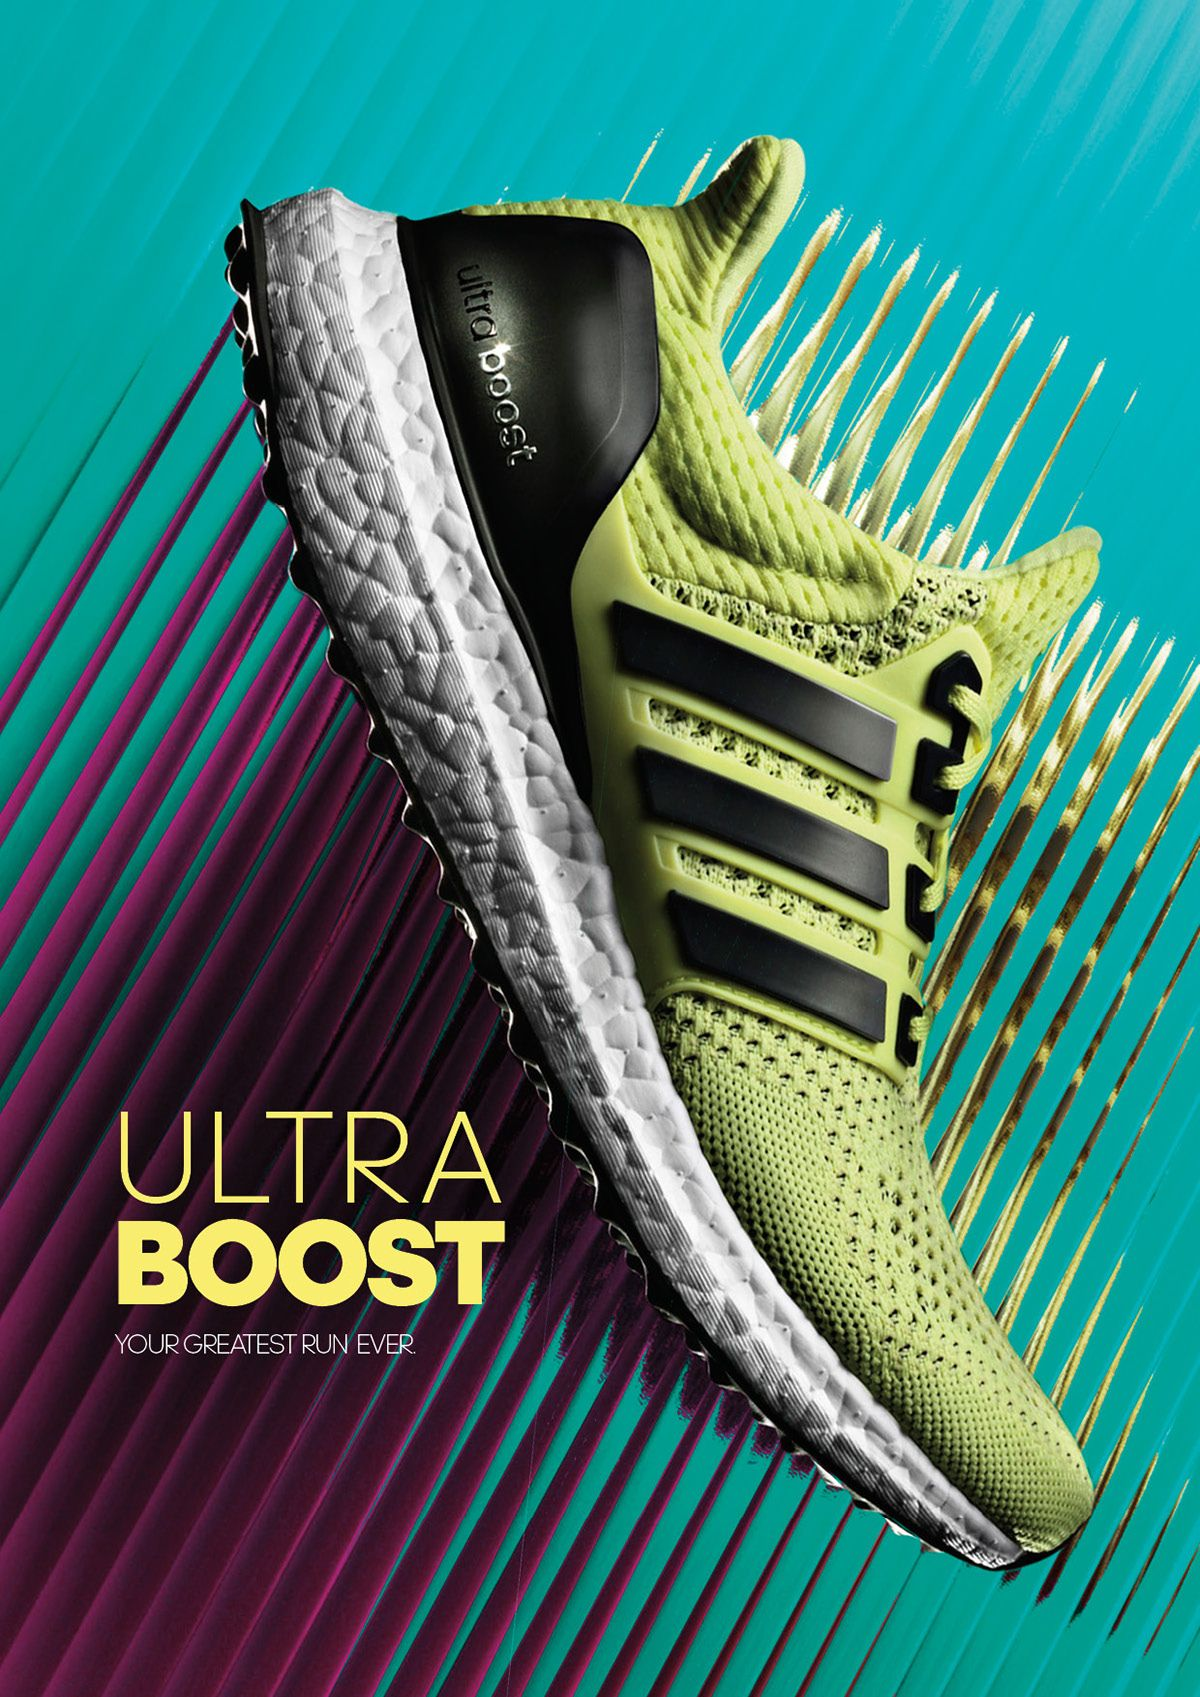 6a00e7bc01e adidas Ultra Boost FW15 Energy Takes Over Campaign on Behance ...